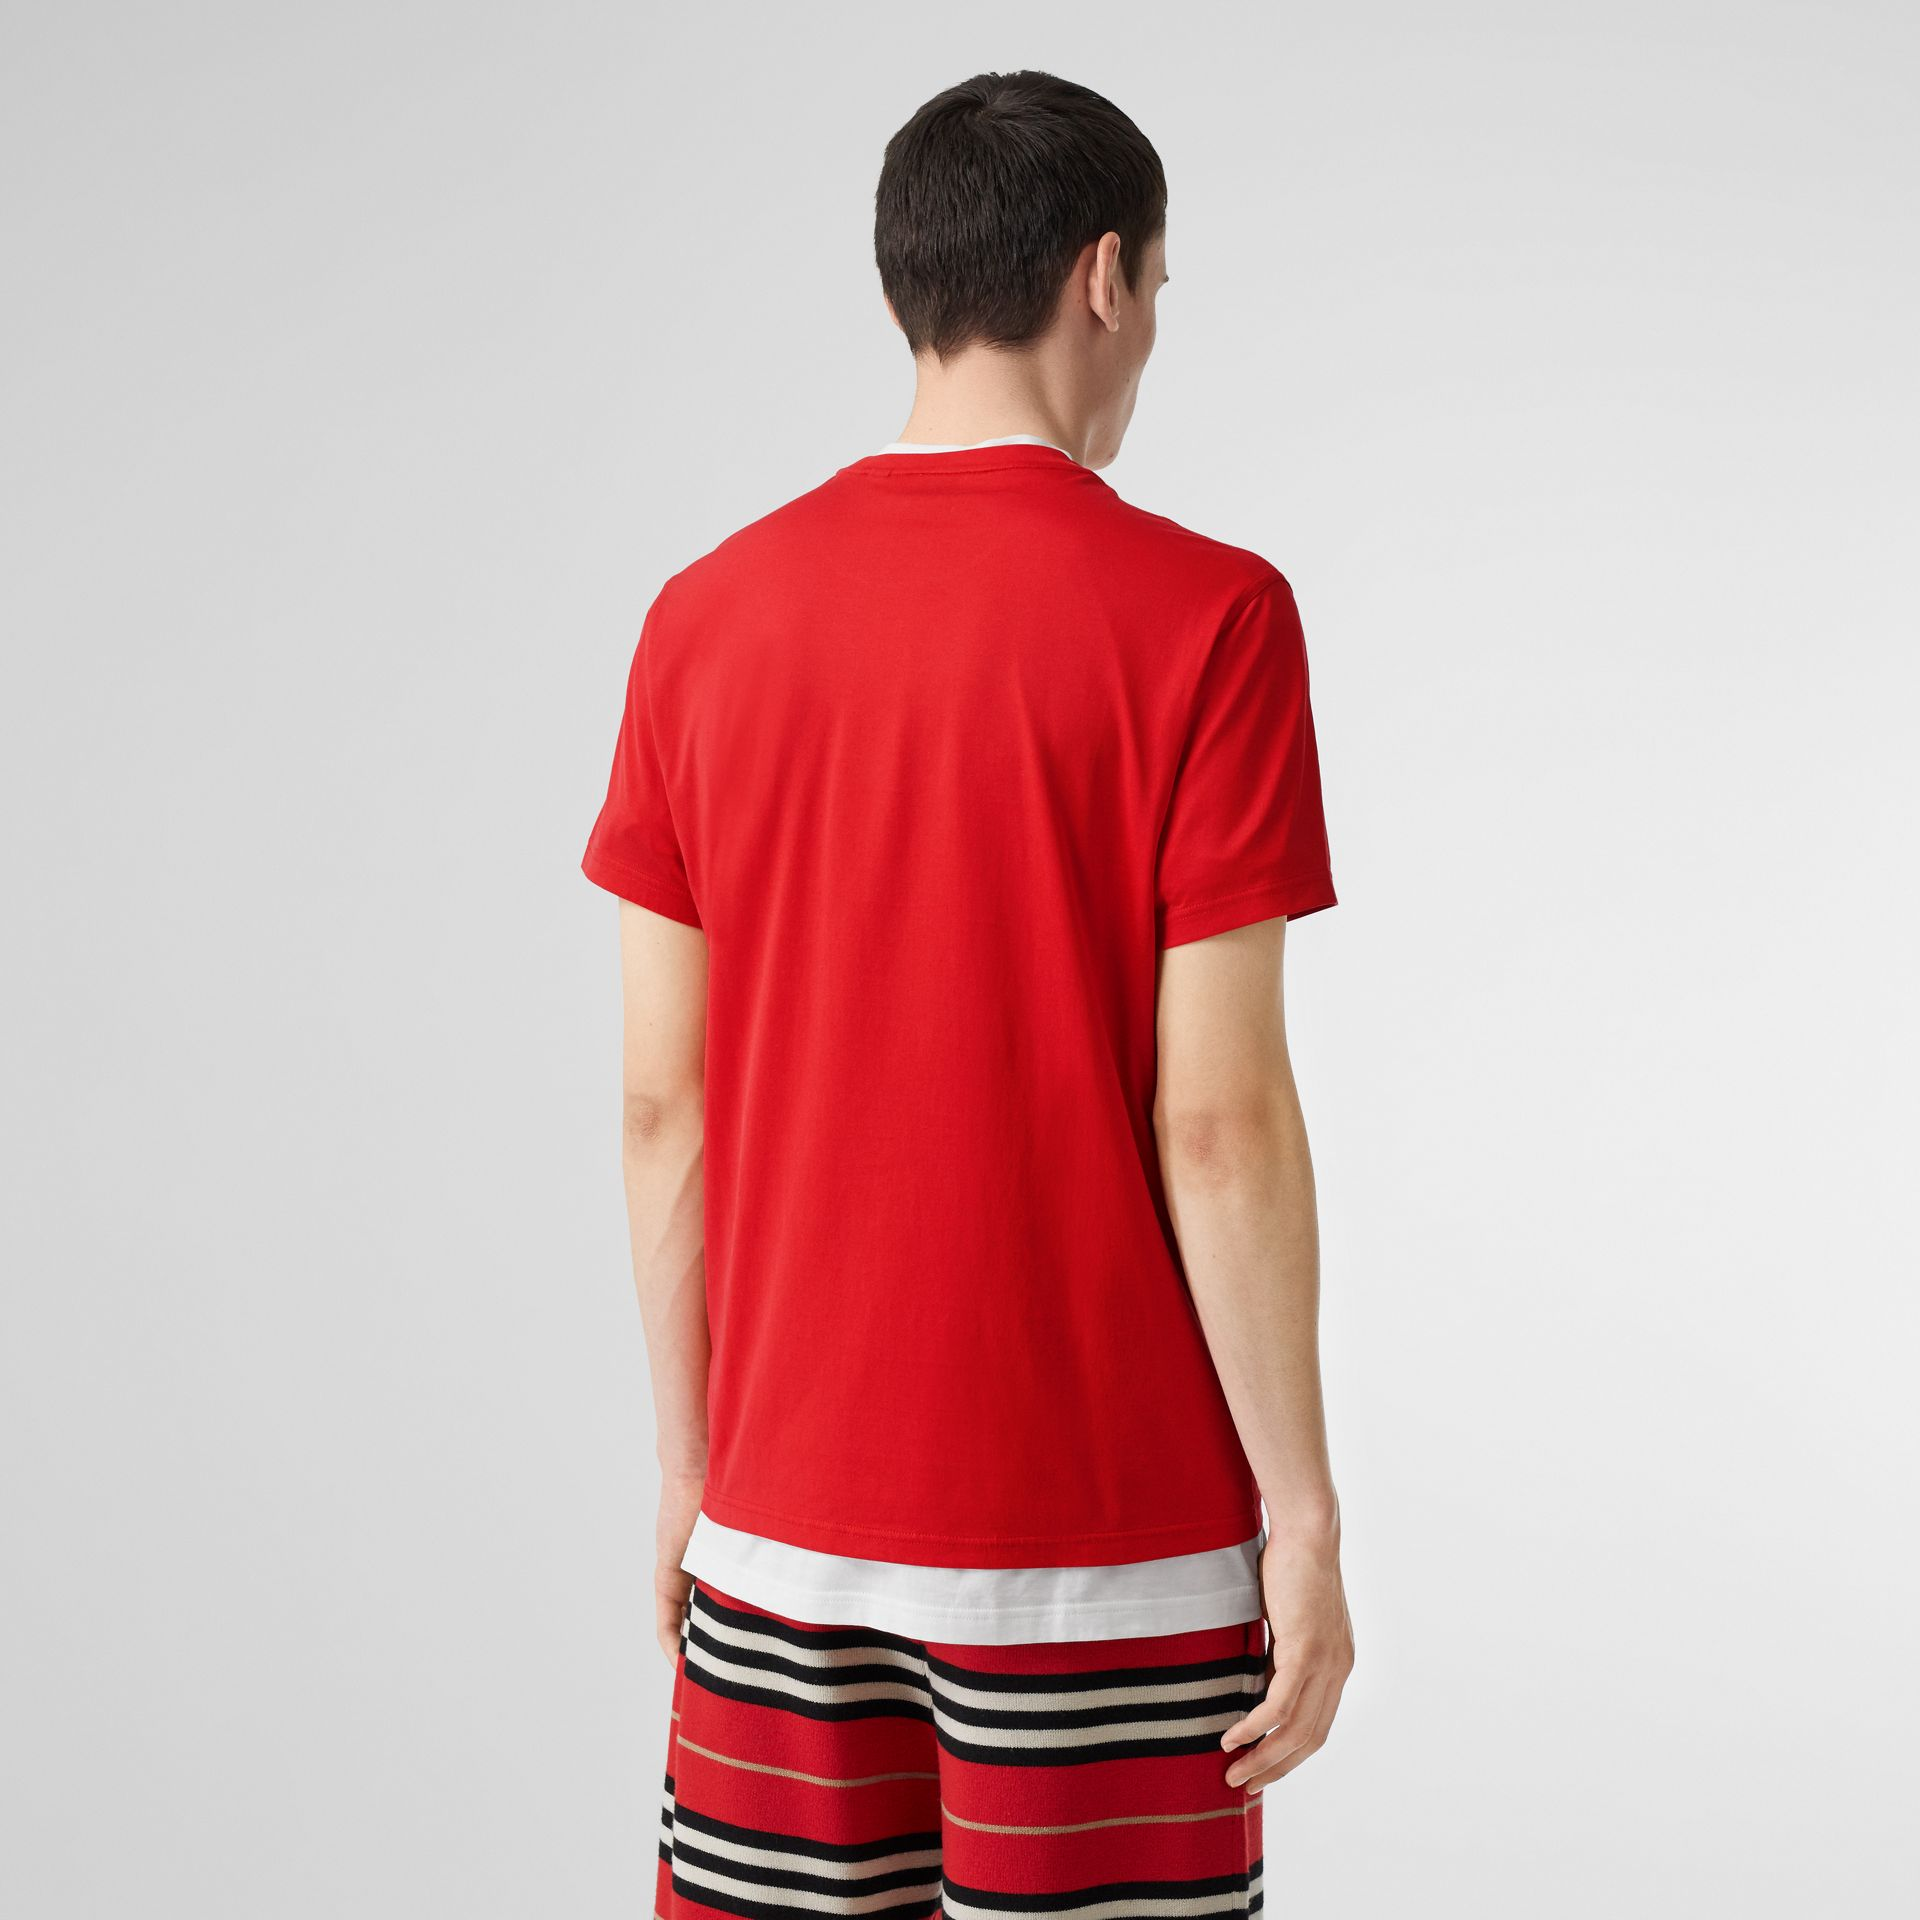 Monogram Motif Cotton T-shirt in Bright Red - Men | Burberry - gallery image 2